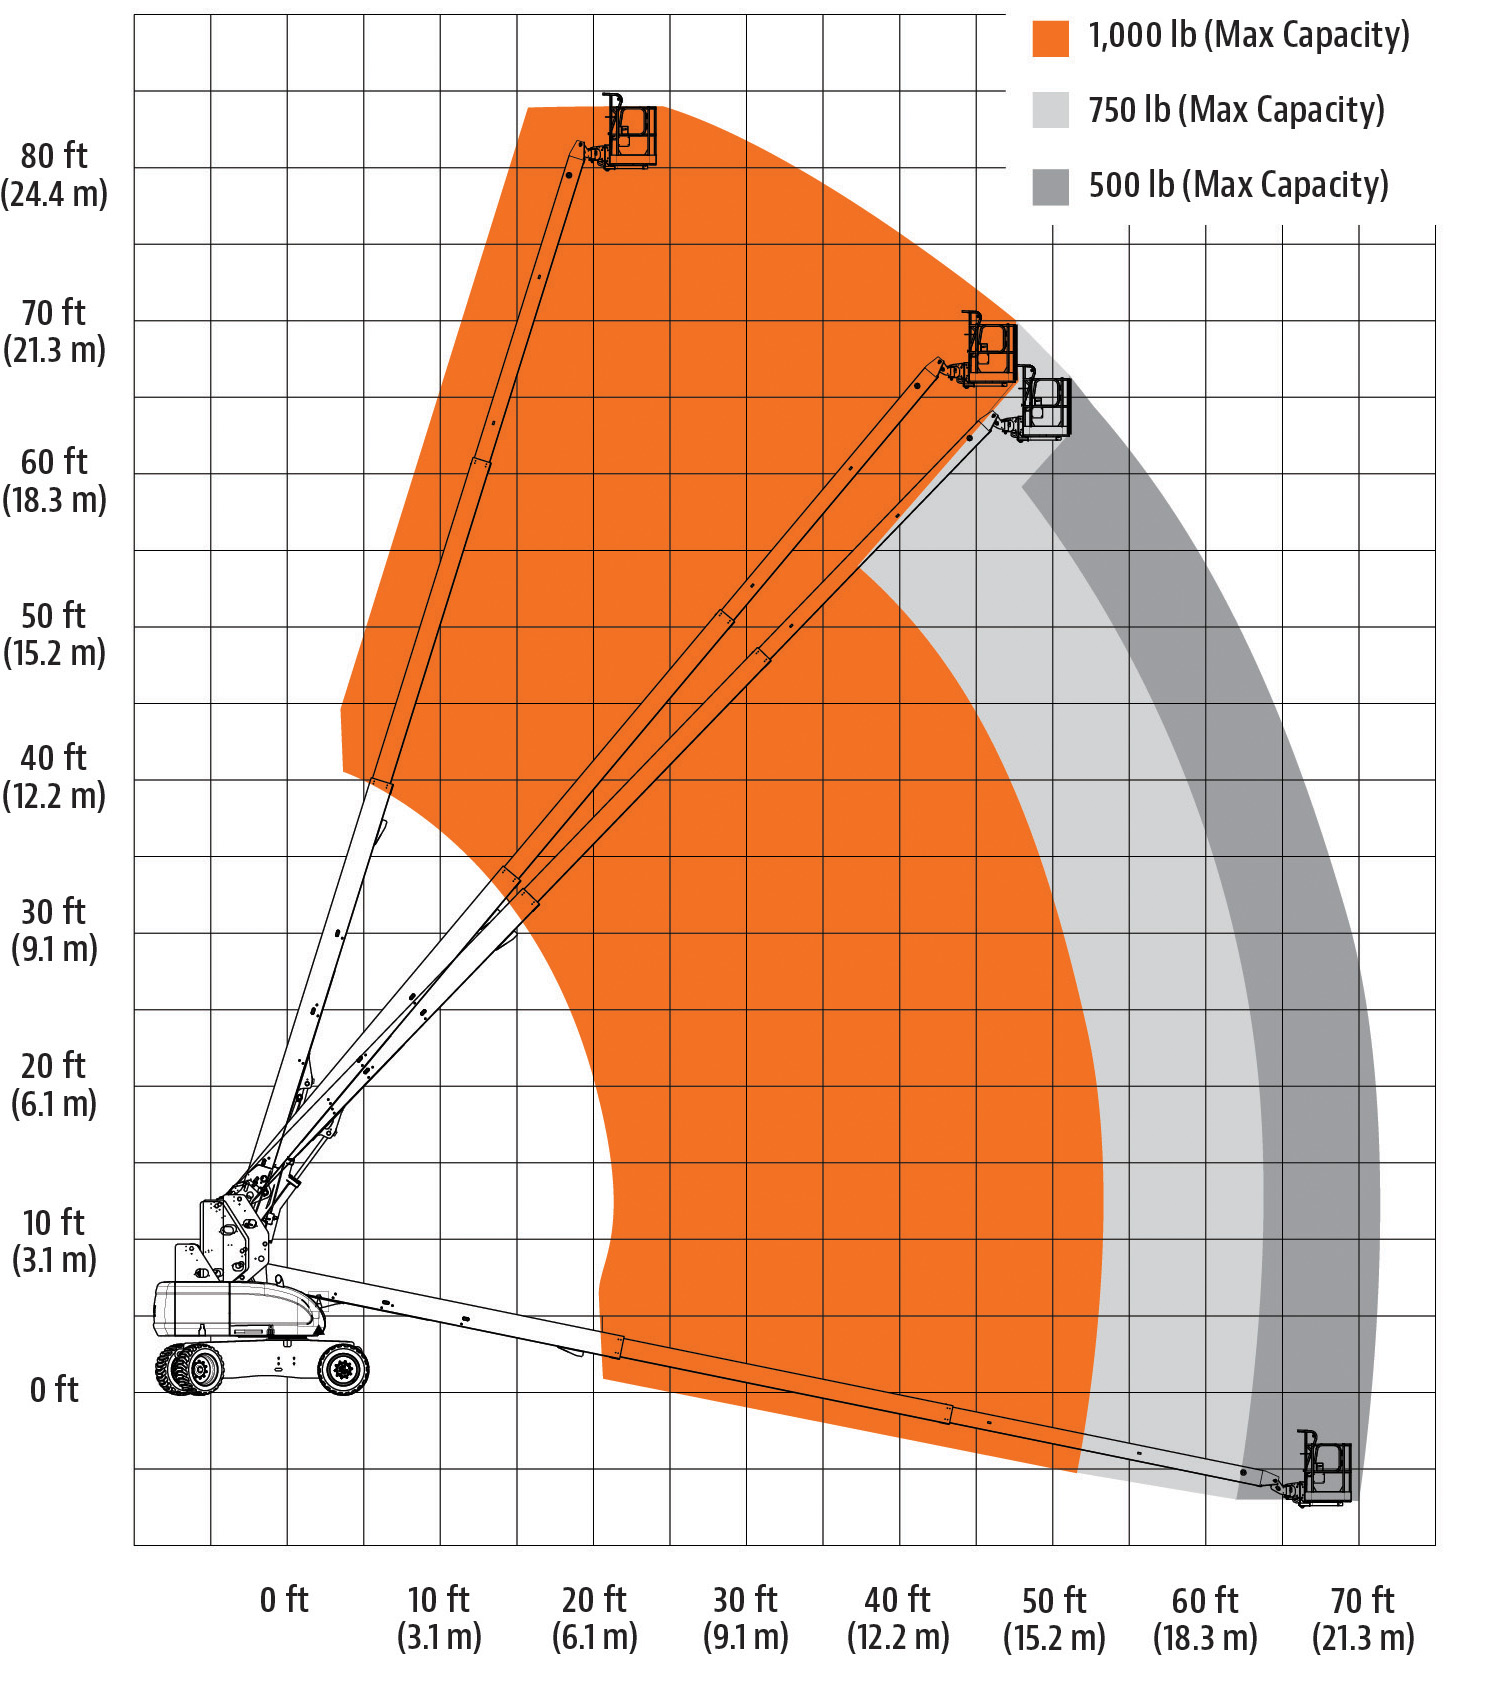 JLG 800S HC3 Reach Diagram